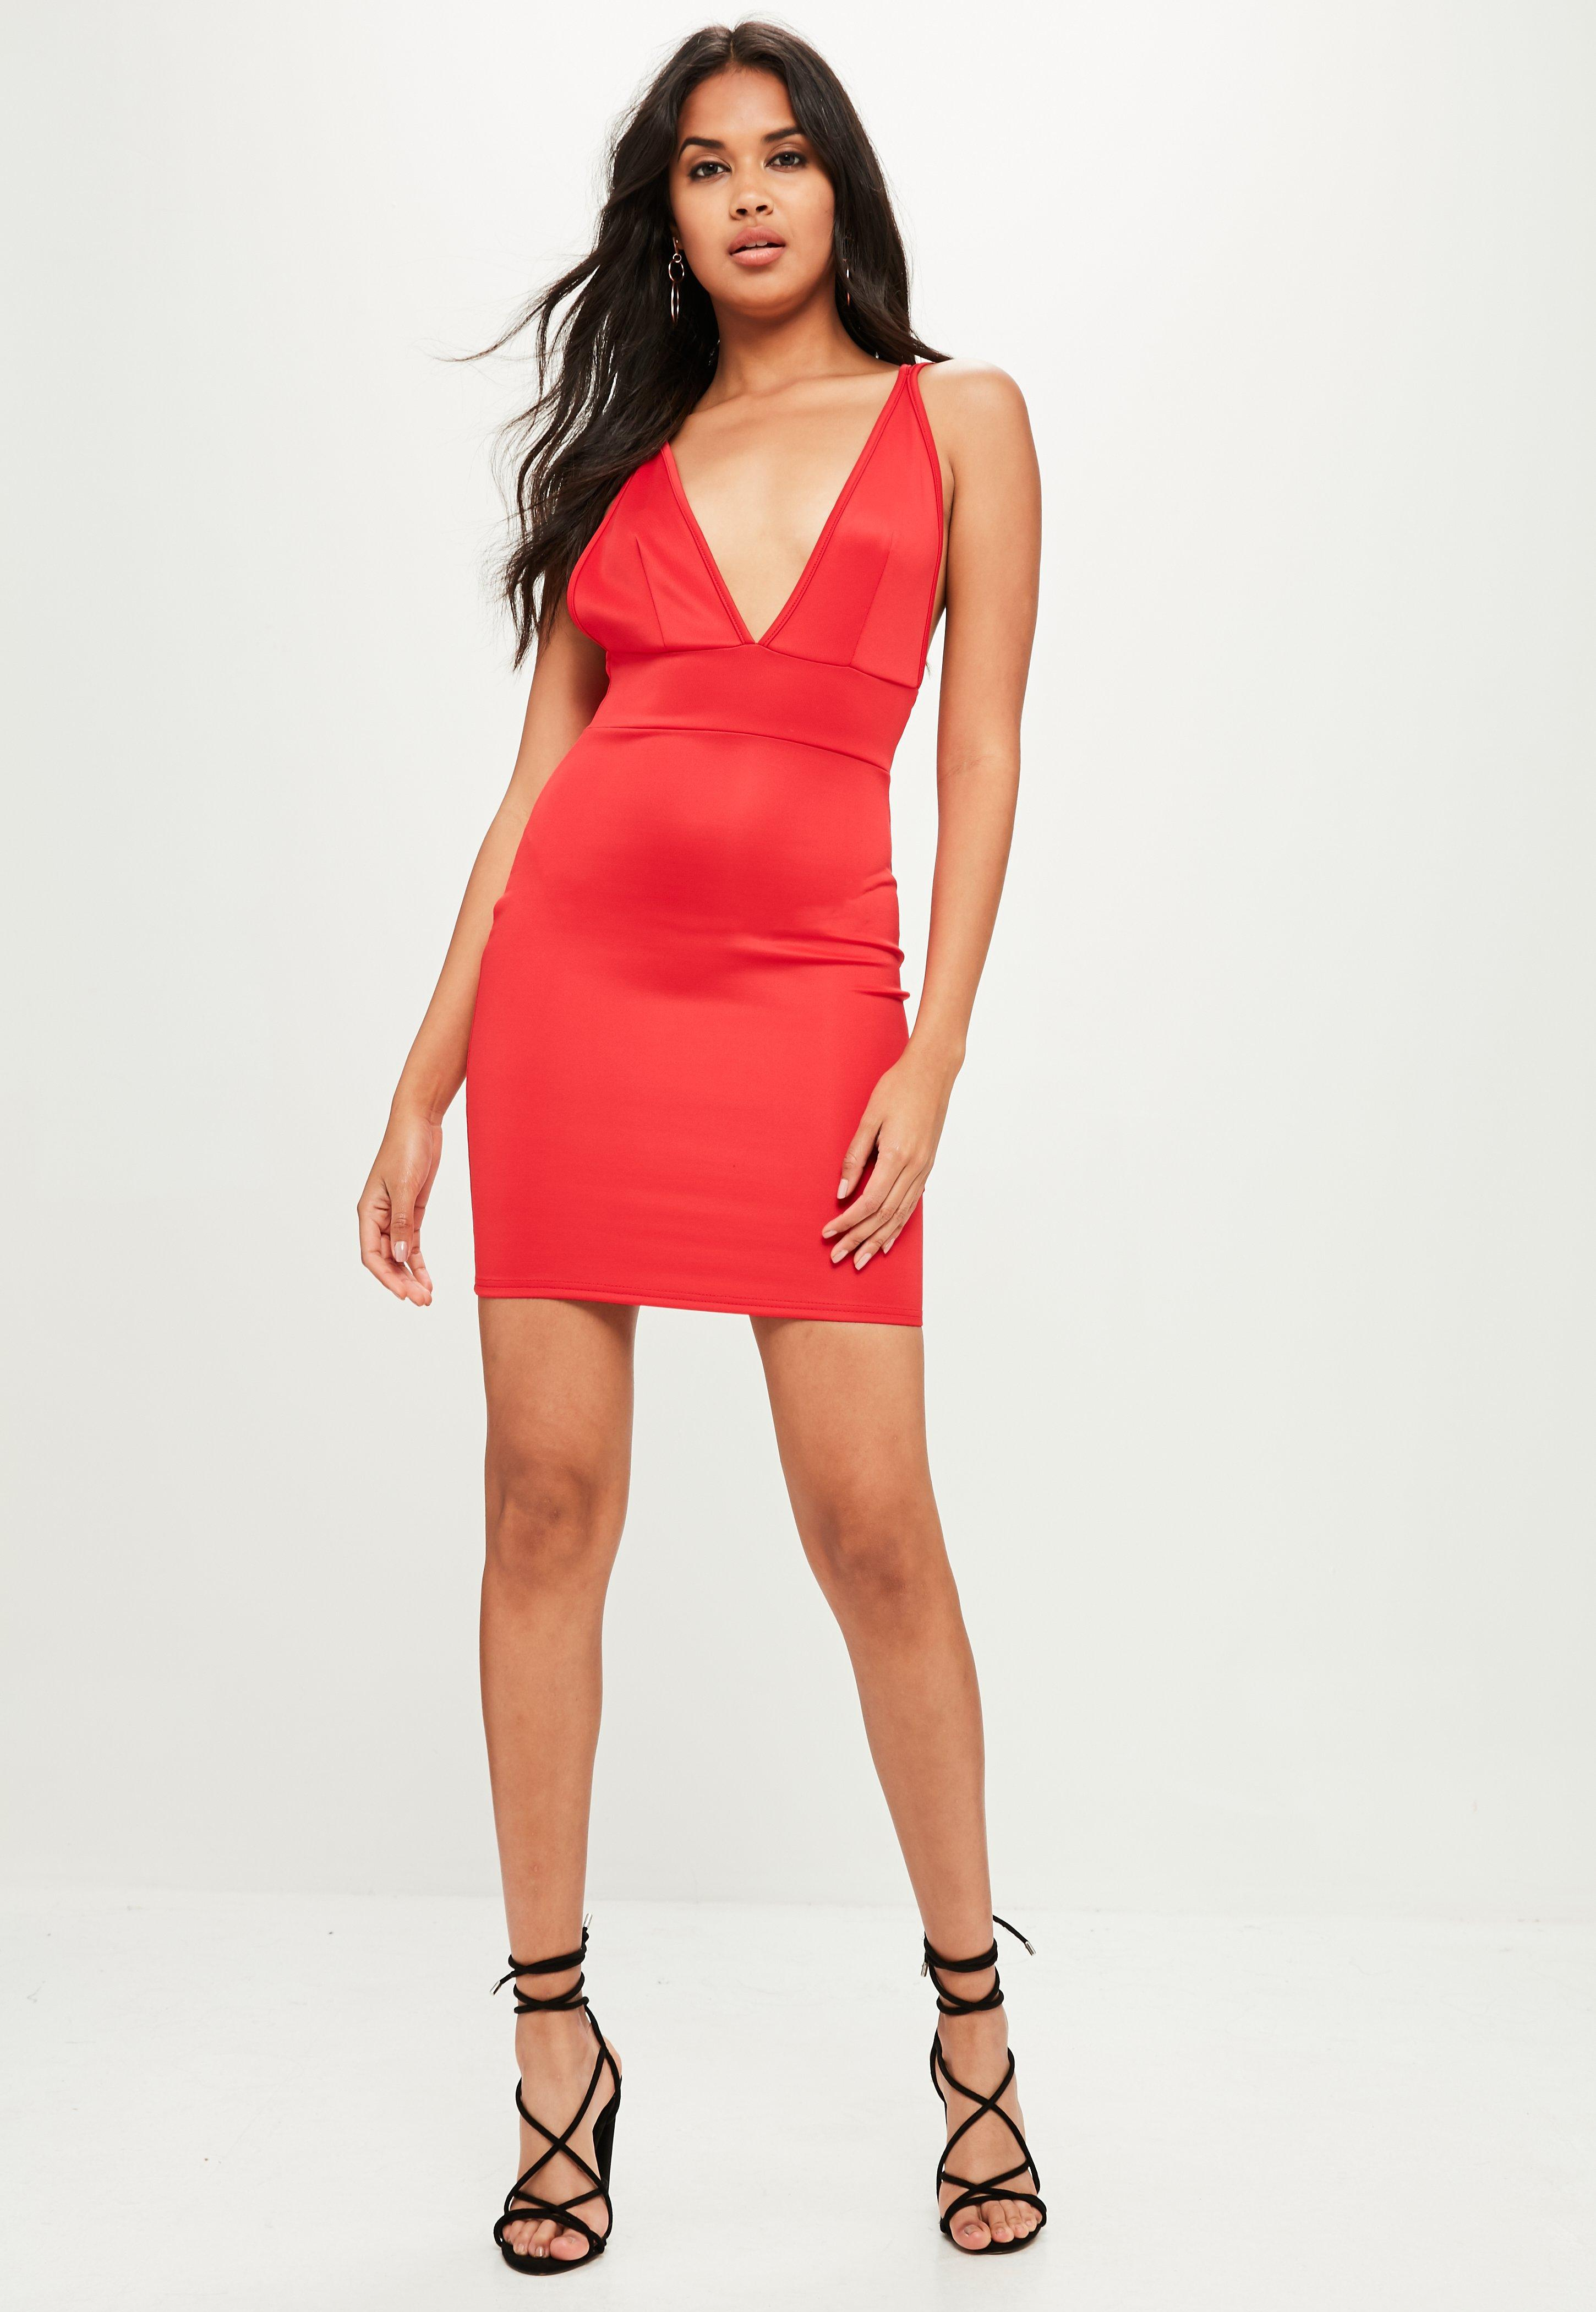 Lyst - Missguided Red Scuba Plunge Dress in Red 55460abf2